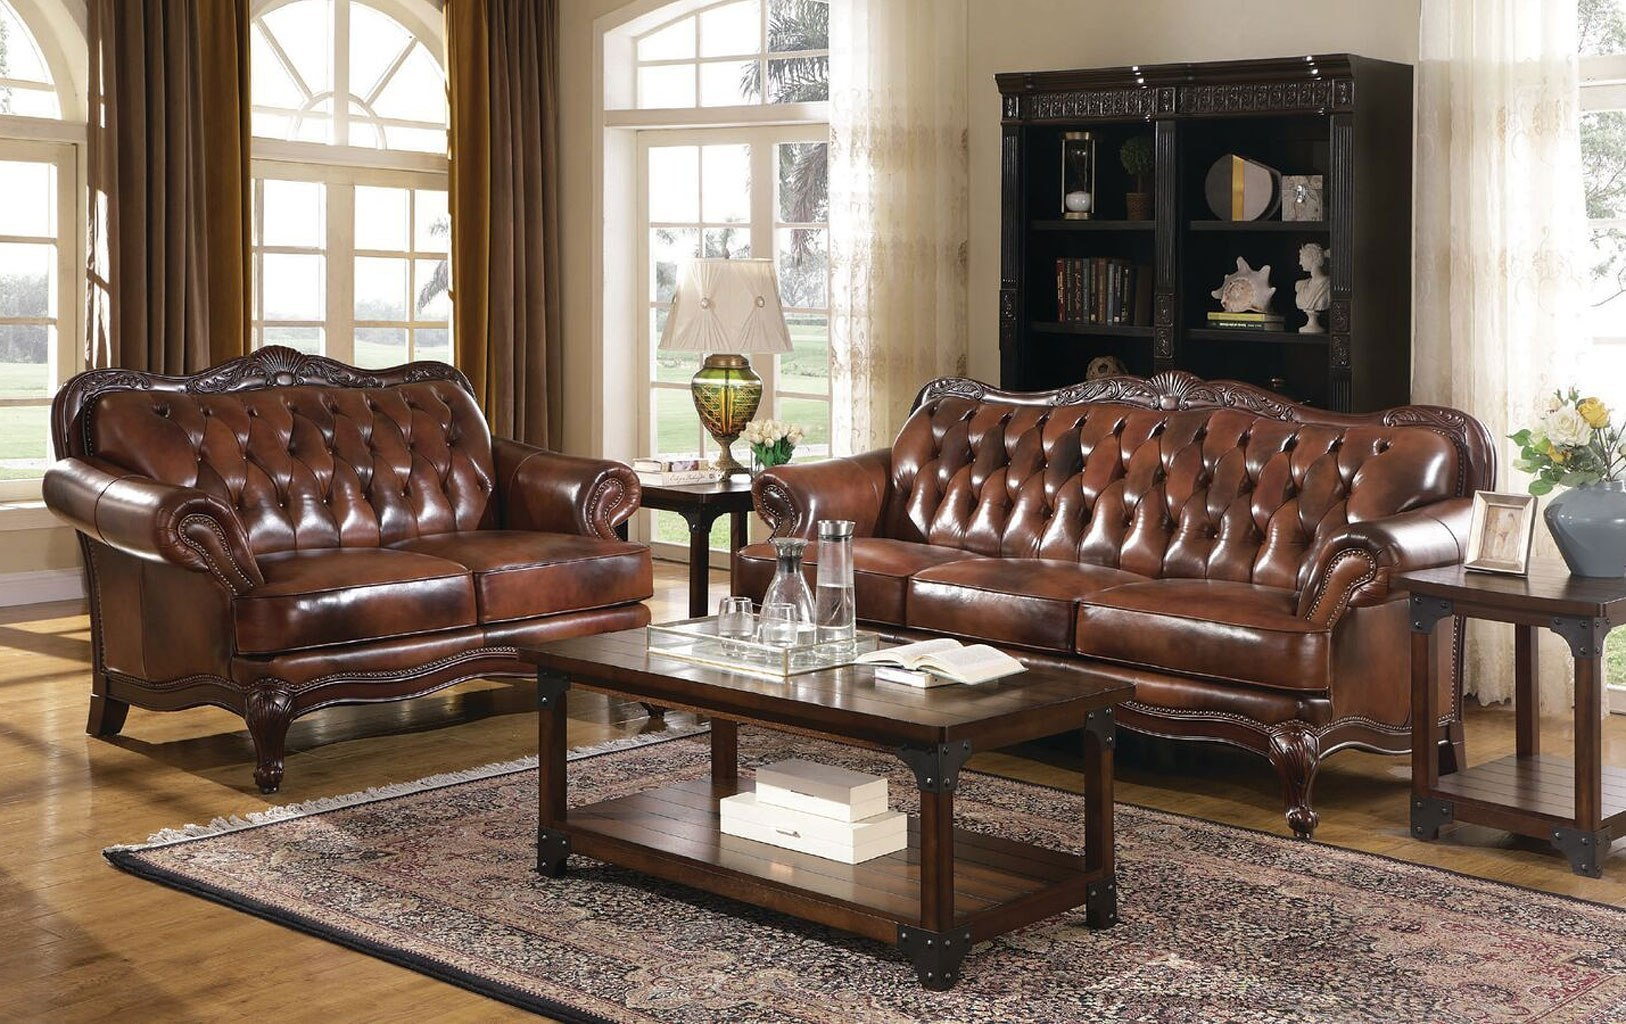 Victoria Leather Living Room Set pertaining to 13 Clever Tricks of How to Improve Shop Living Room Sets